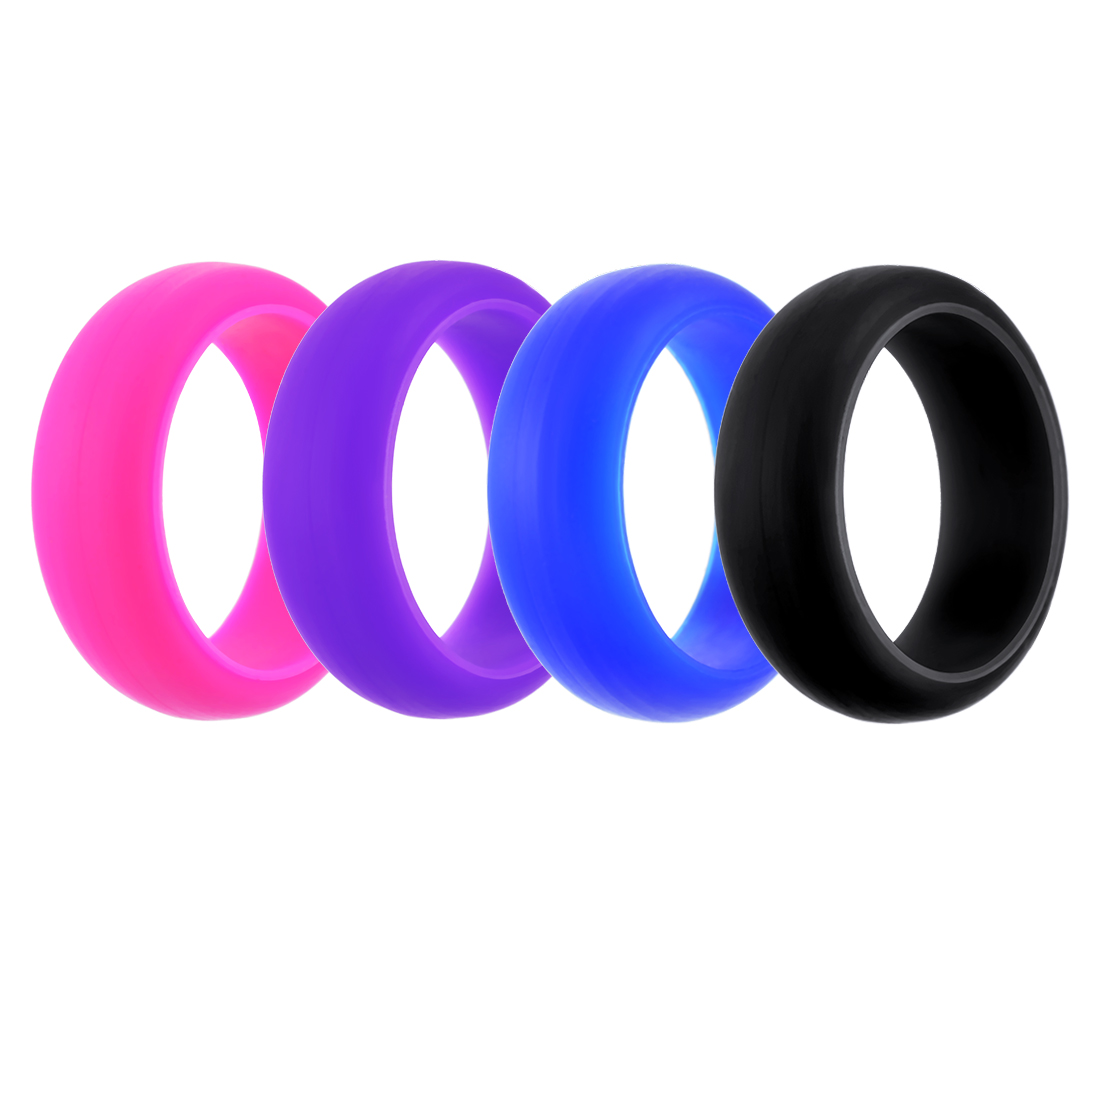 Mjartoria Fixed Mix 4color Women's Sports Marriage Silicone Ring Bination New Arrival Wedding Ring